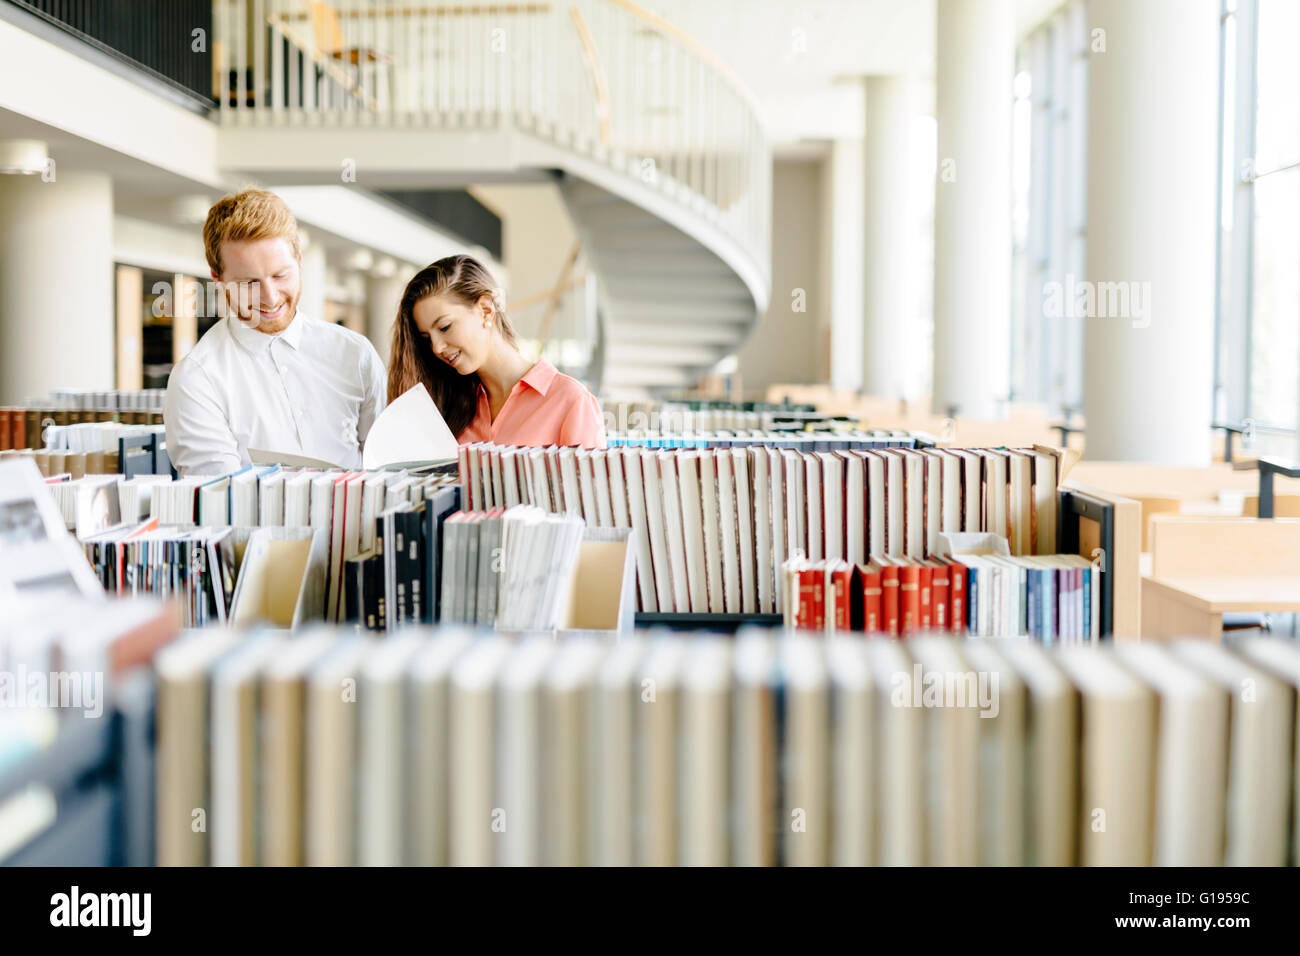 Two  smart students reading and studying in library whole searching through books on the shelves - Stock Image